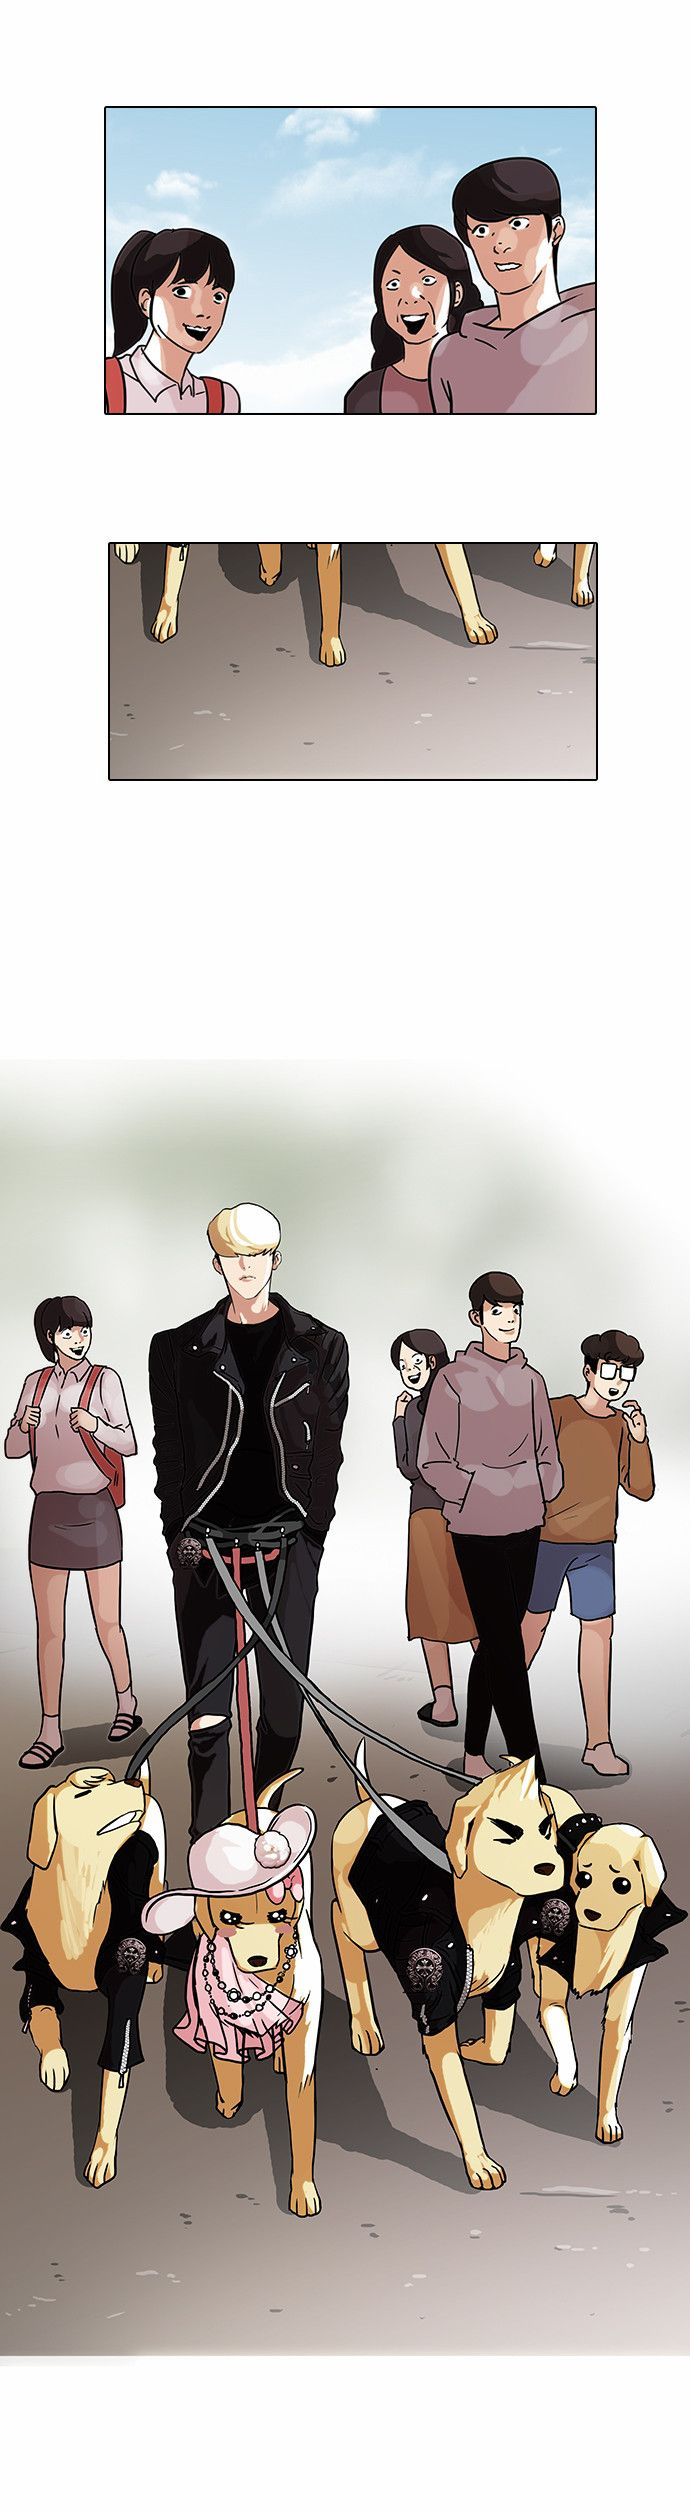 Dating was the easiest manhwa BIG SHOTS